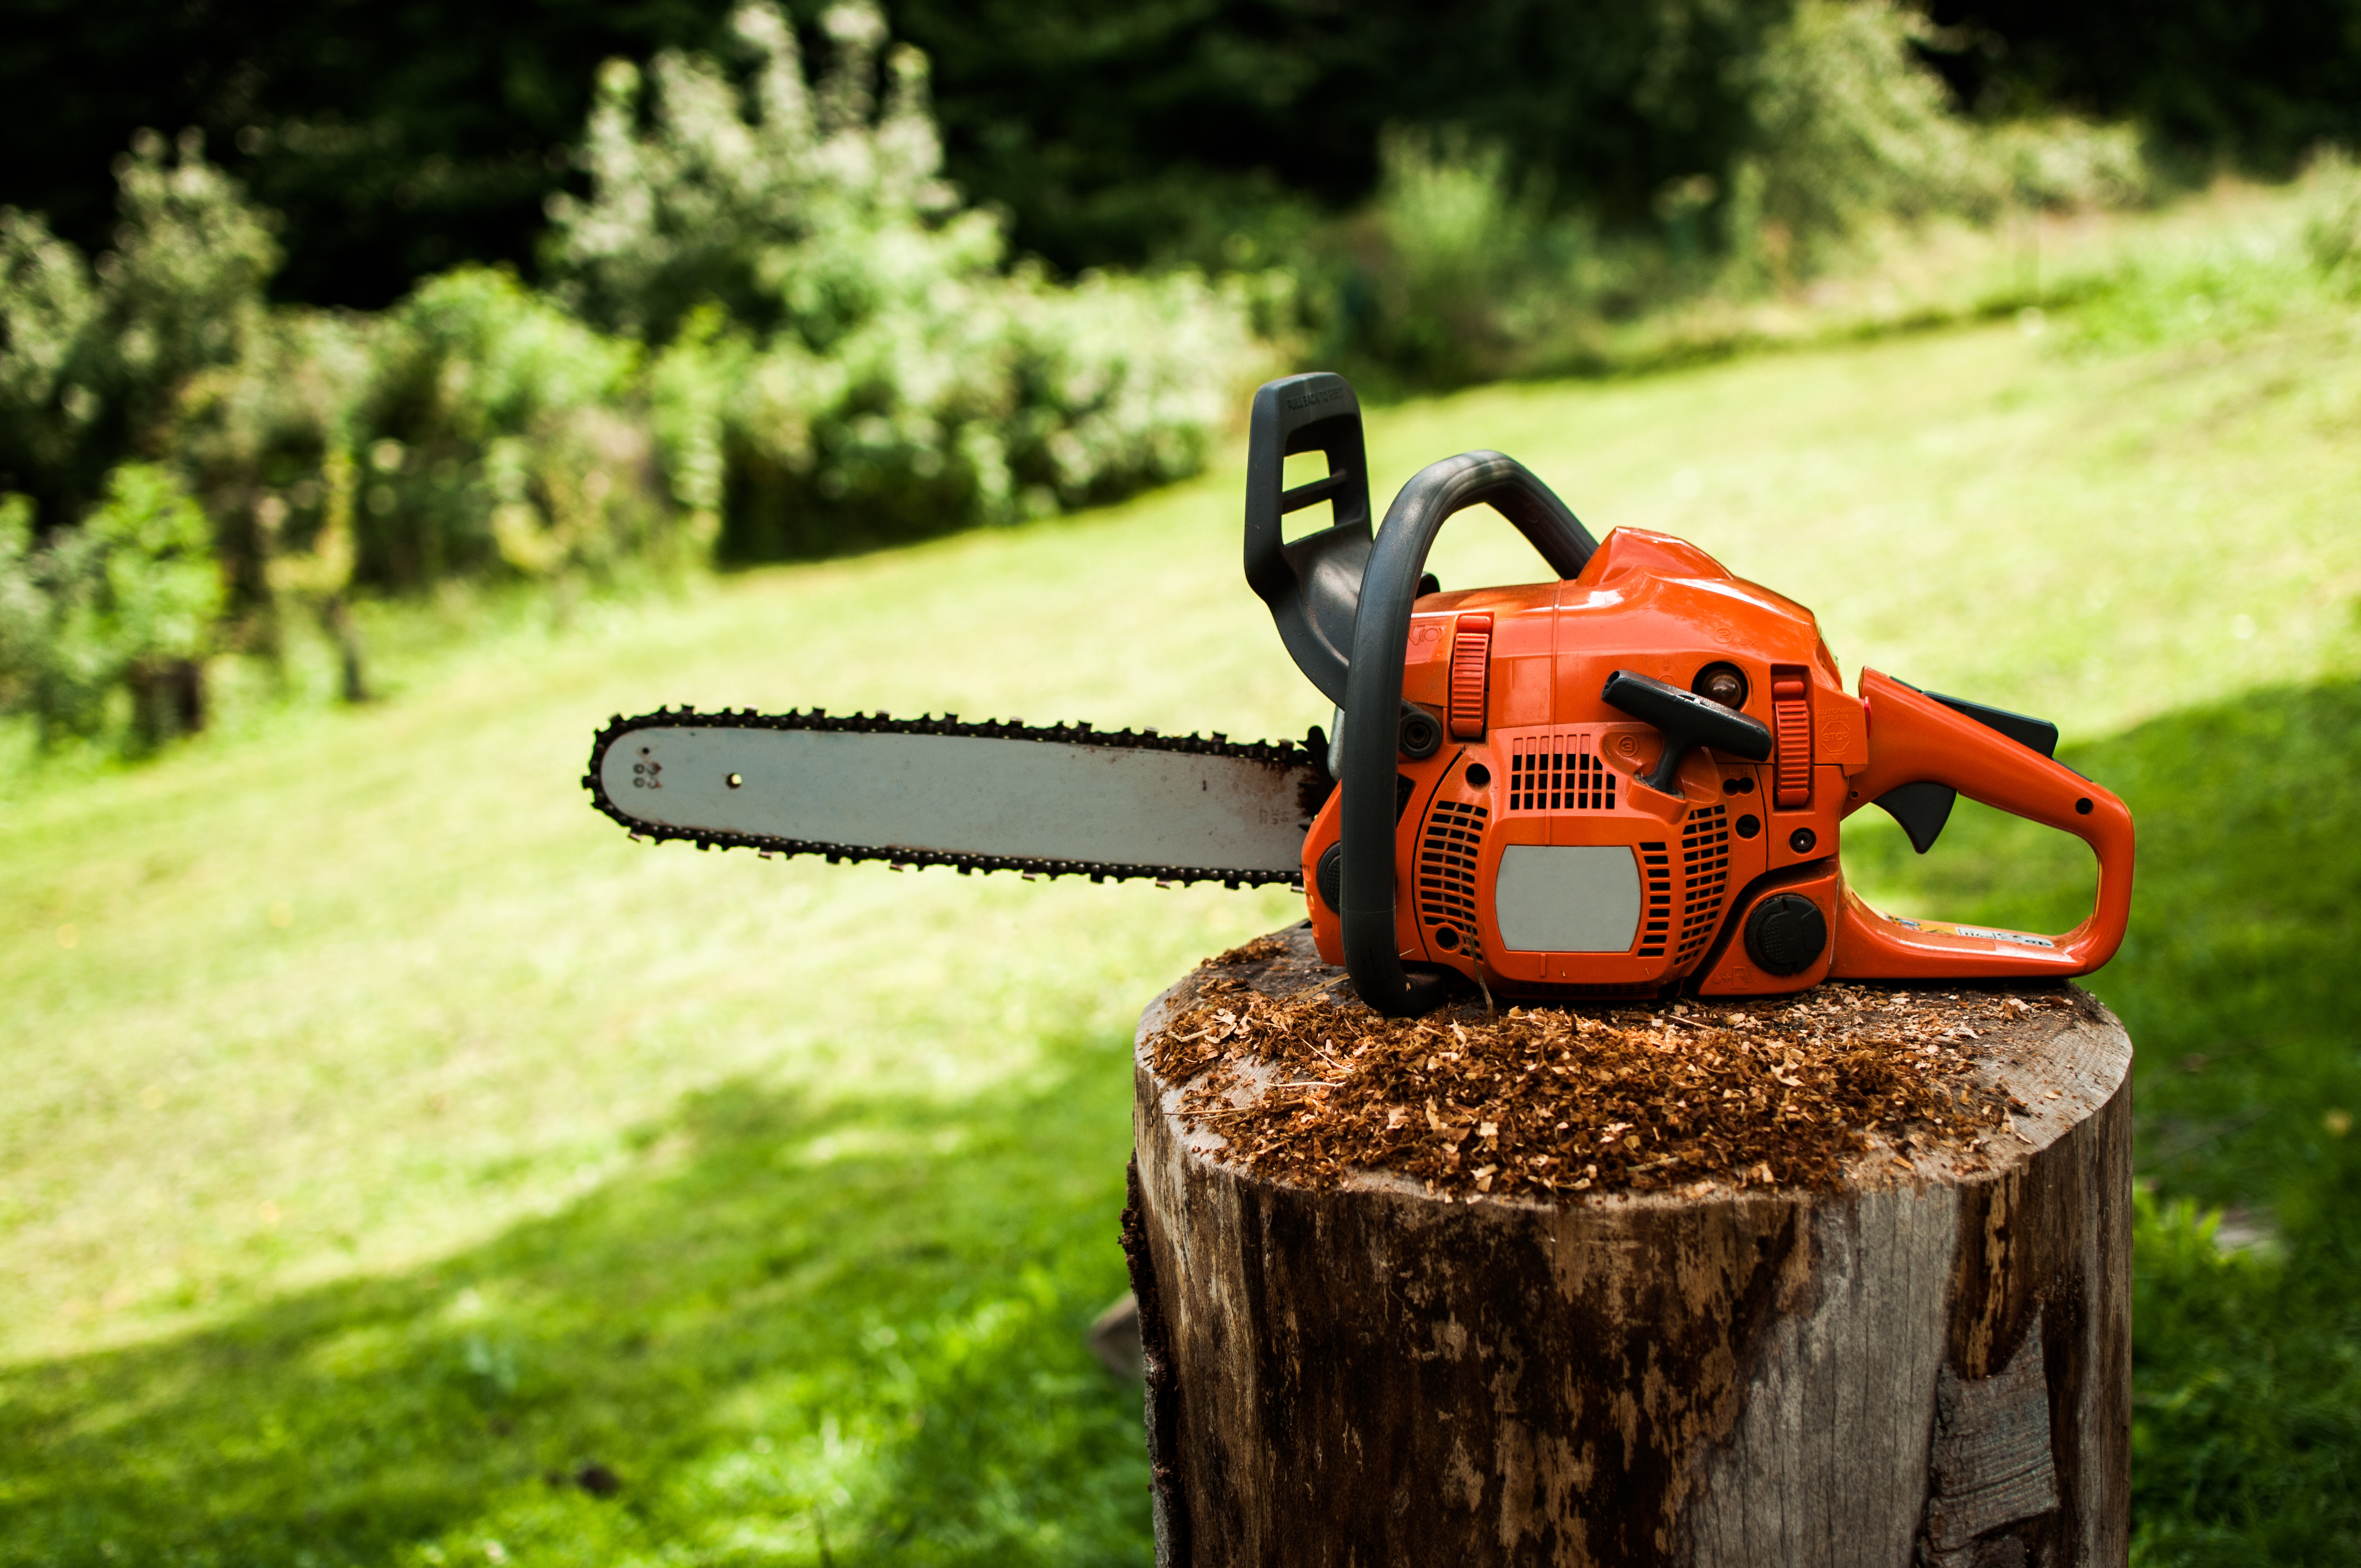 How to Adjust Oil Flow for a Husqvarna Chainsaw | Home